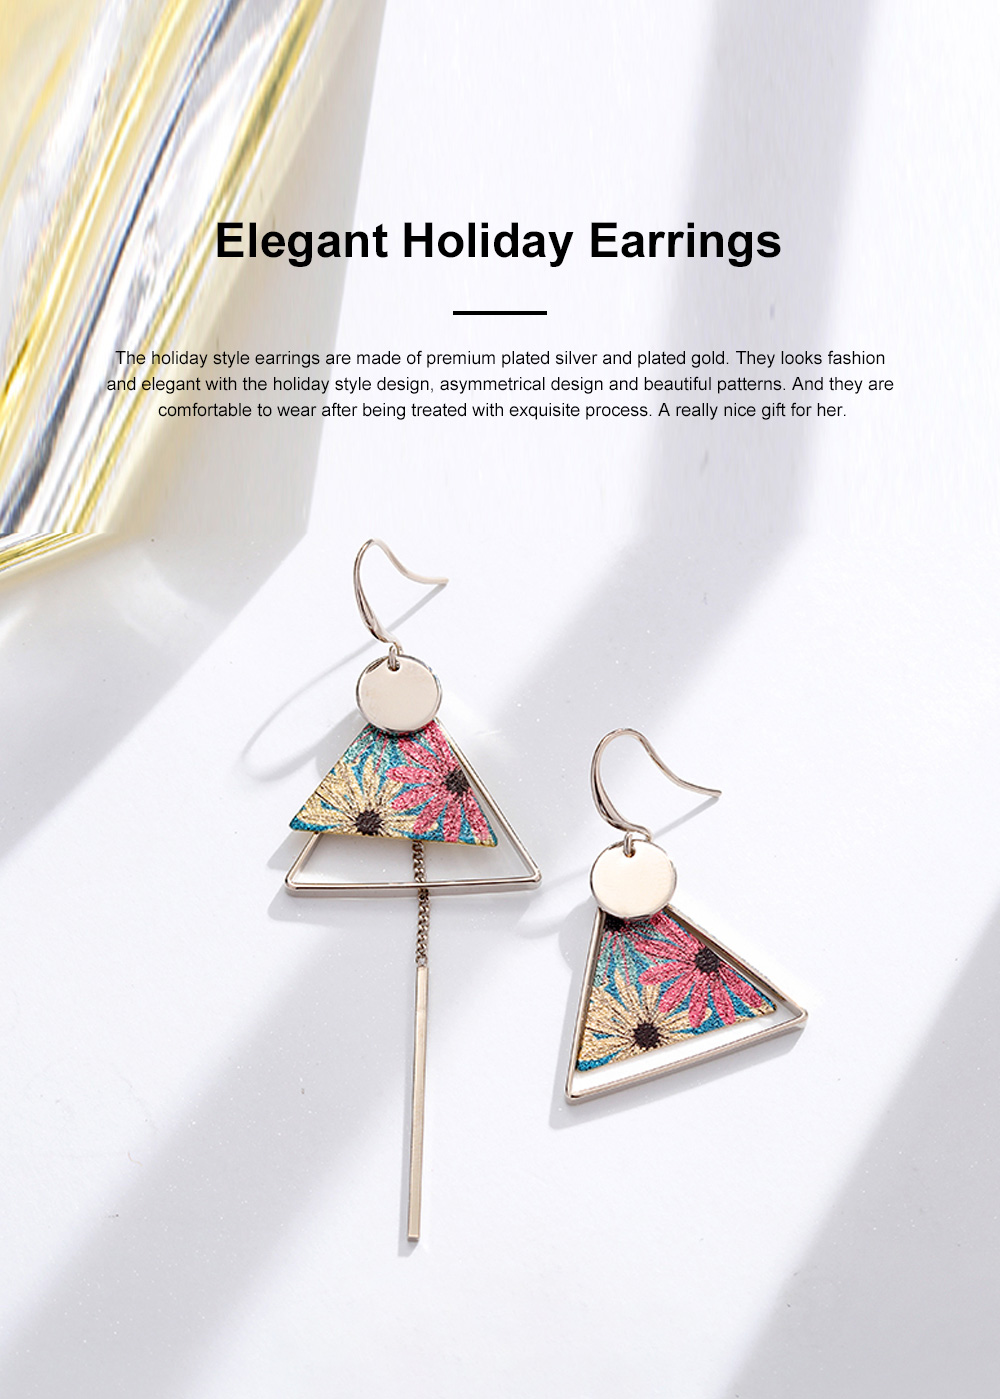 Elegant Holiday Earrings for Women Vocation Style Asymmetrical Earrings with Daisy Peacock Feather Pattern 0